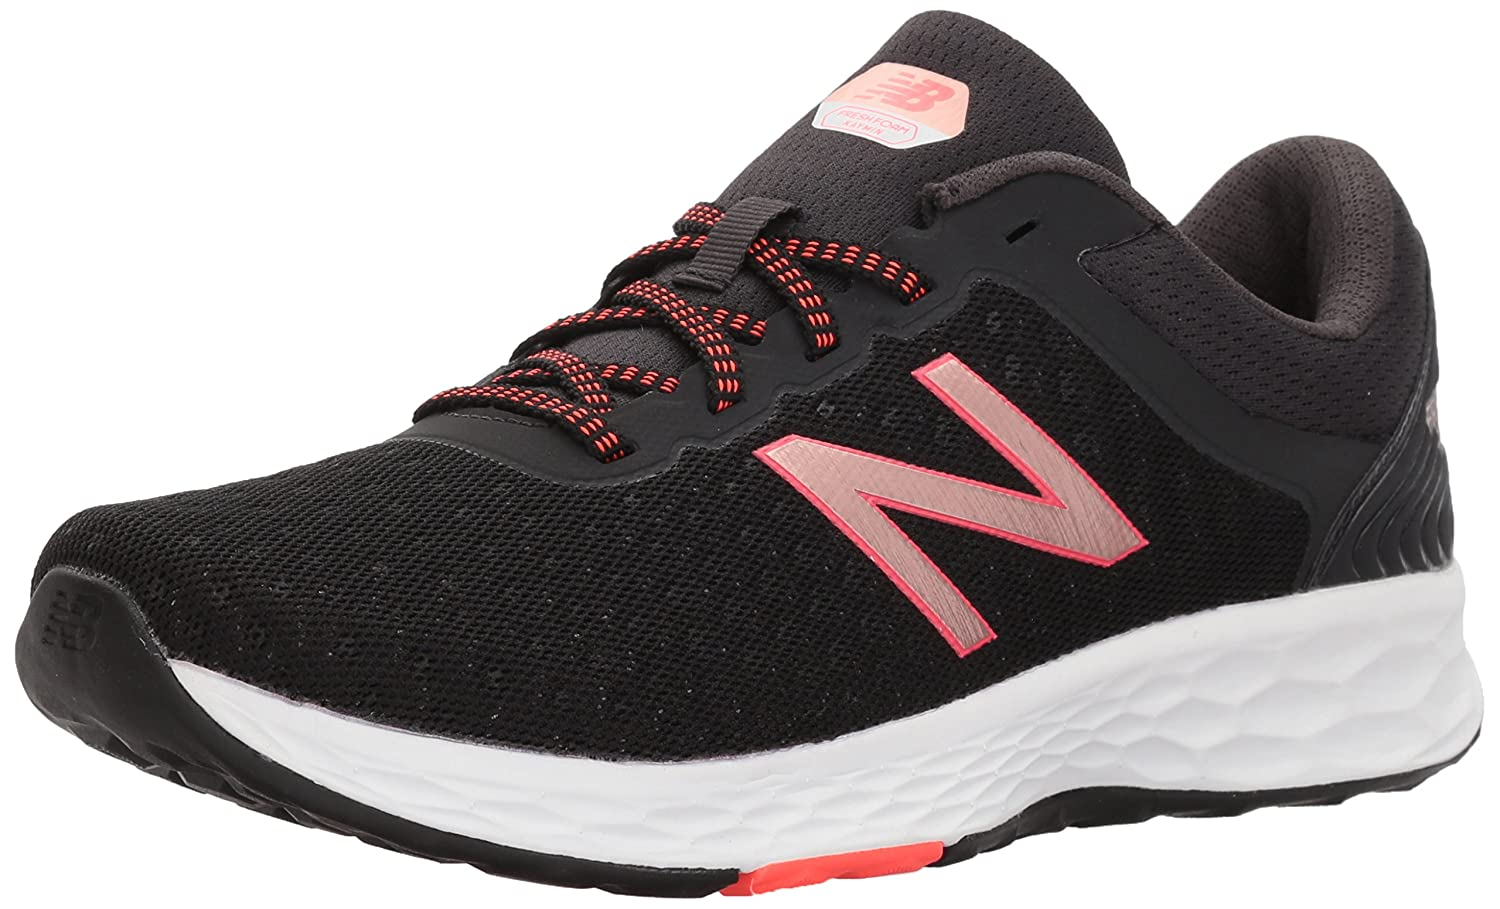 New Balance Women's Running Fresh Foam Kaymin v1 Running Women's Shoe B06XS3PKL3 5 D US|Black/Phantom 51b46a